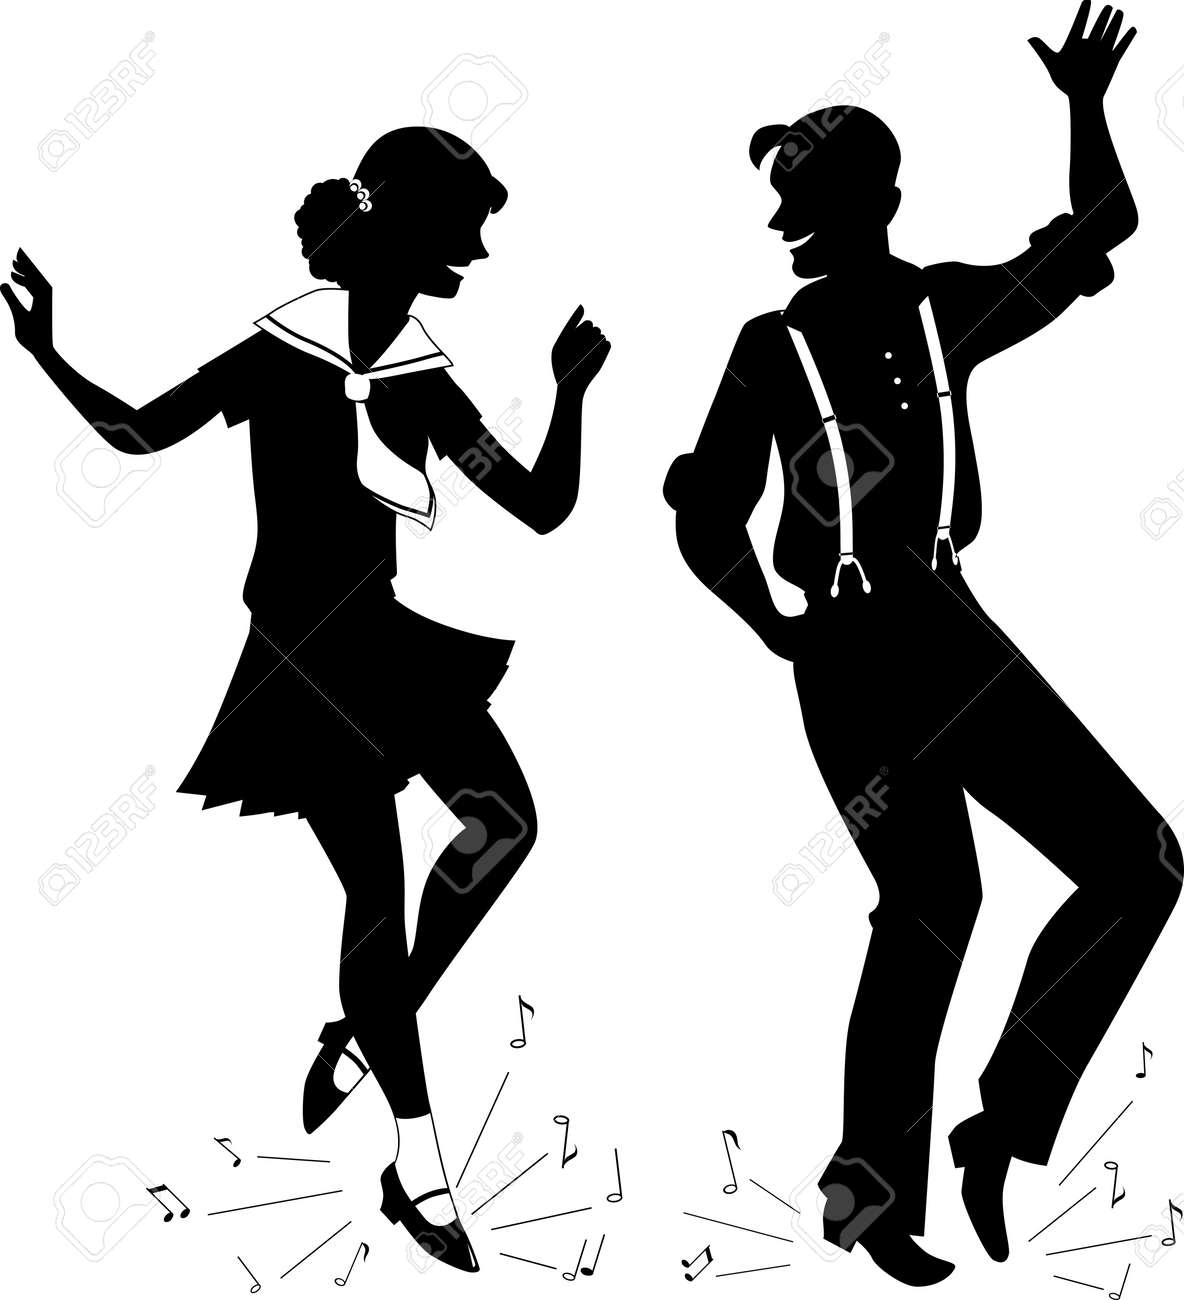 347 tap dance cliparts stock vector and royalty free tap dance rh 123rf com Music Note Icon Music Notes Graphics